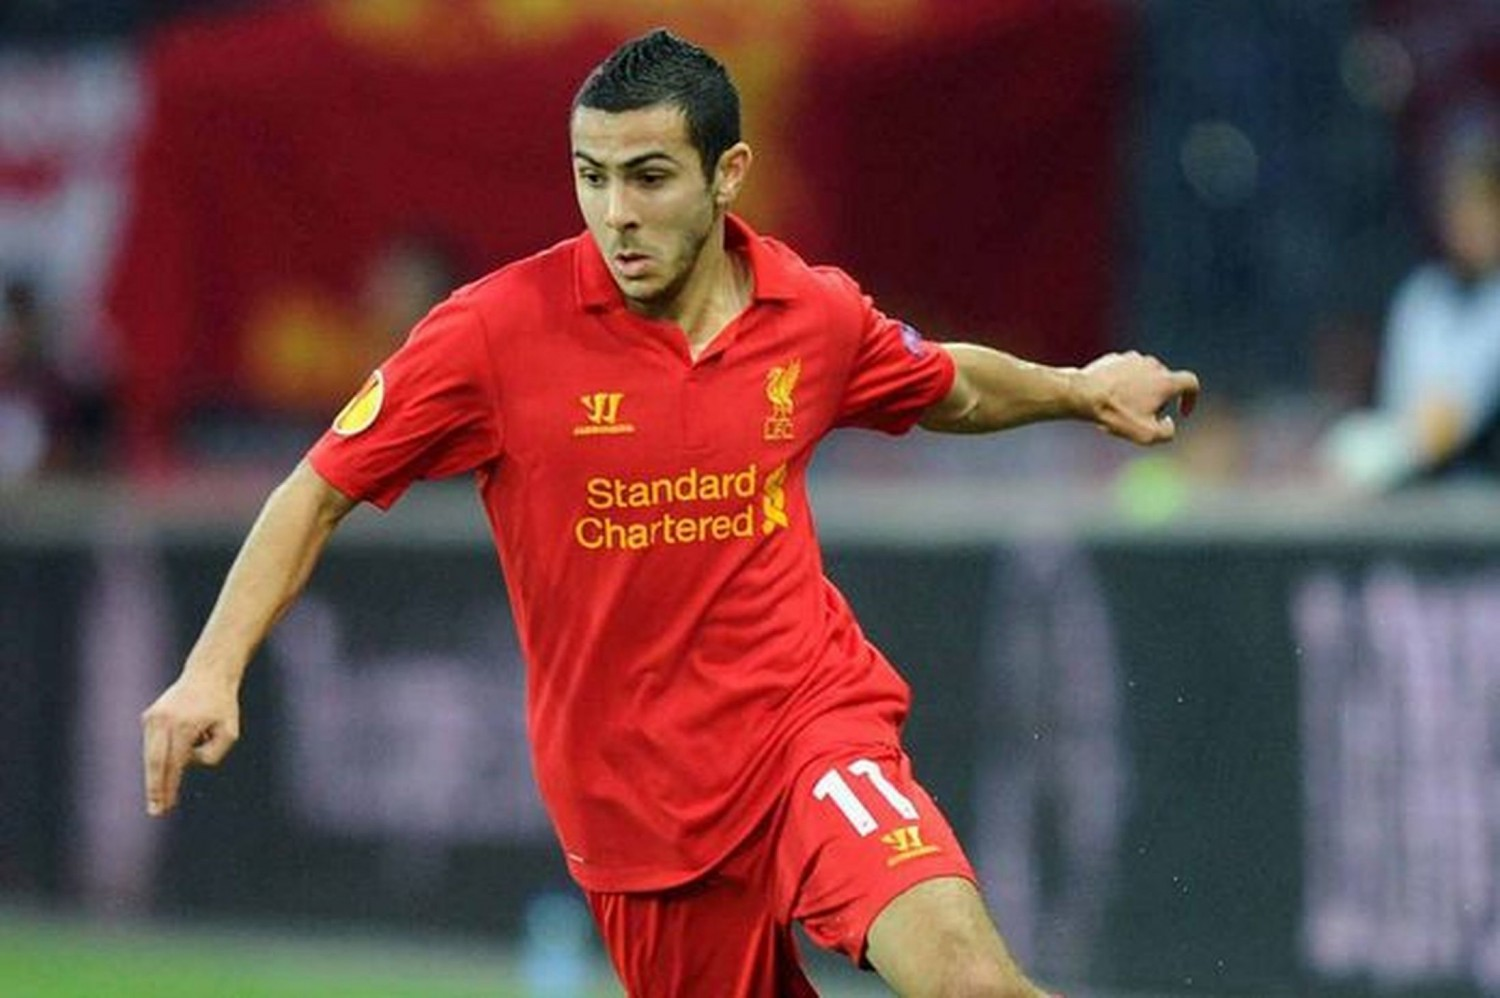 Oussama Assaidi pourra disputer la finel de l'Asian Champions League